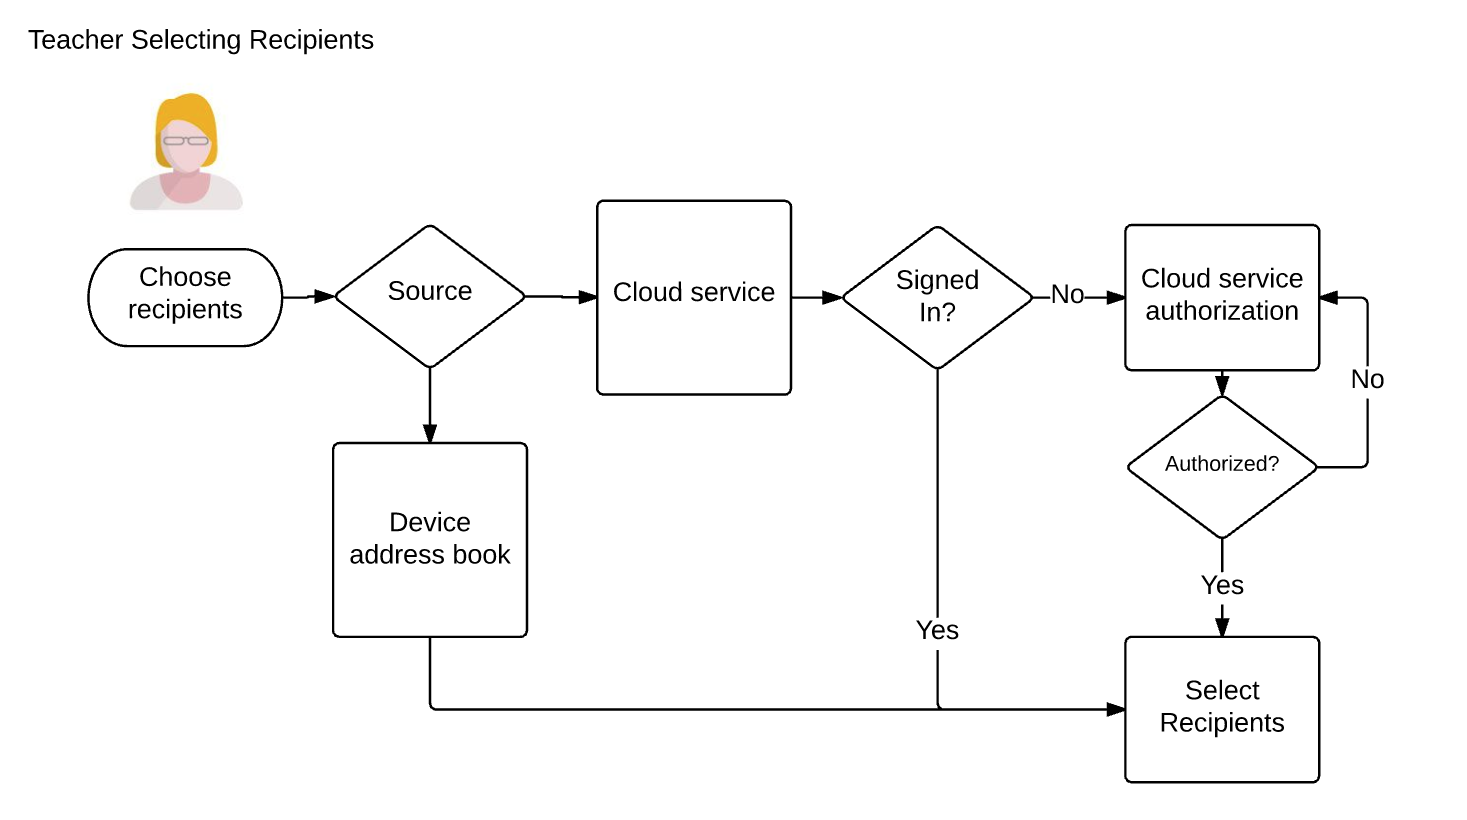 Use Case Flow - Selecting Recipients